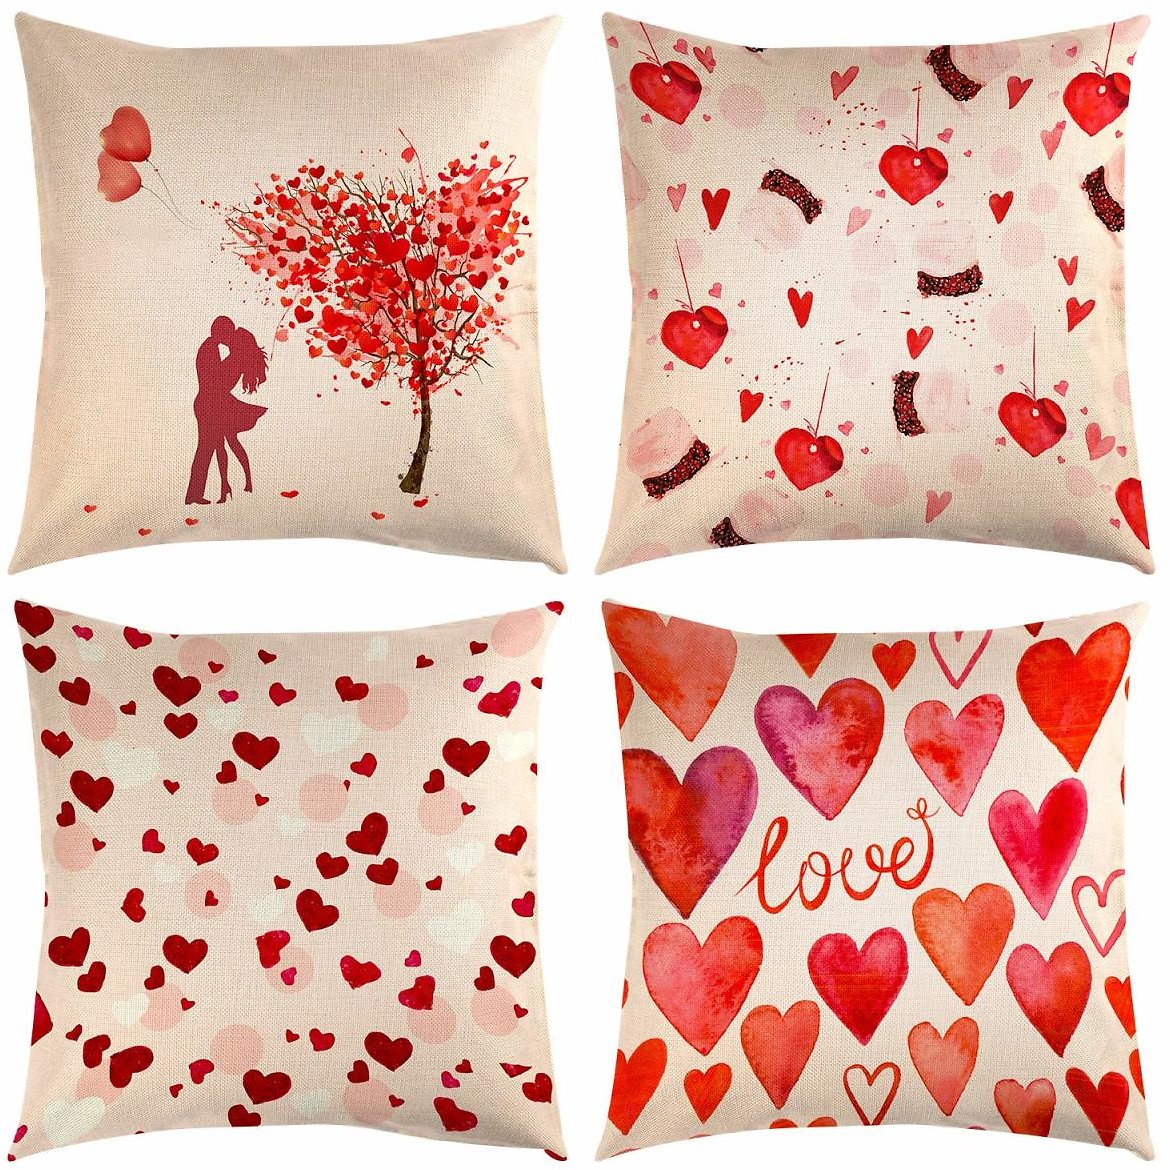 TUPARKA 4 Pcs Happy Valentine's Day Throw Pillow Covers Buy used: $8.77 Now